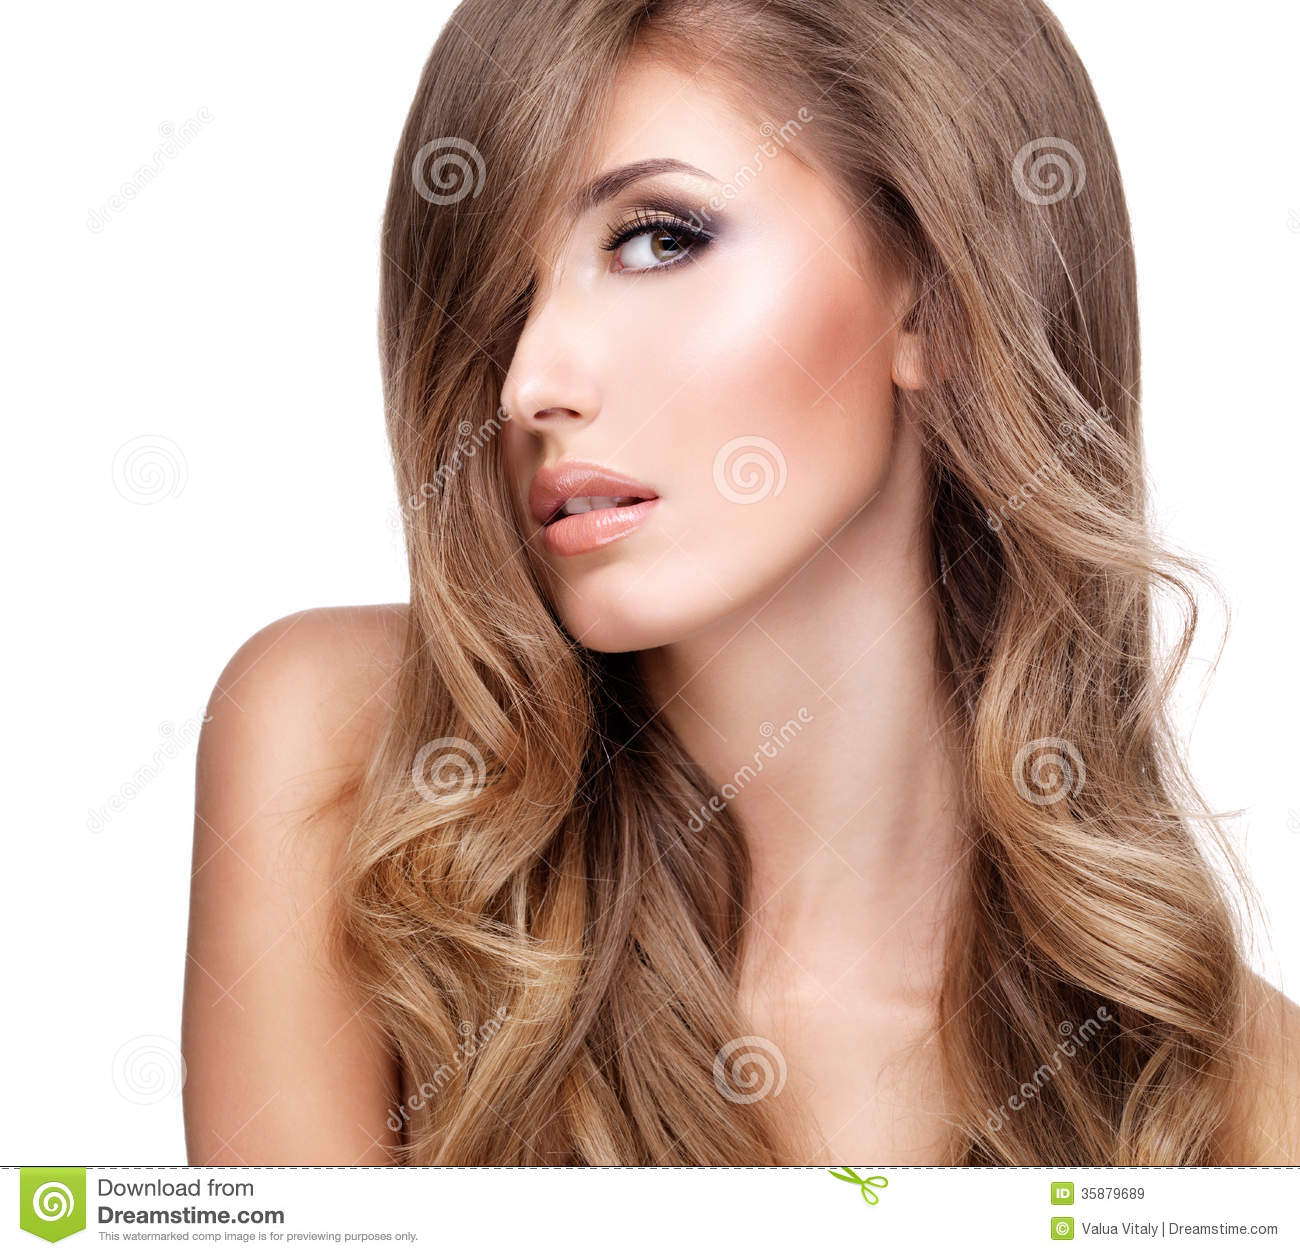 Profile of a beautiful woman with long wavy hair